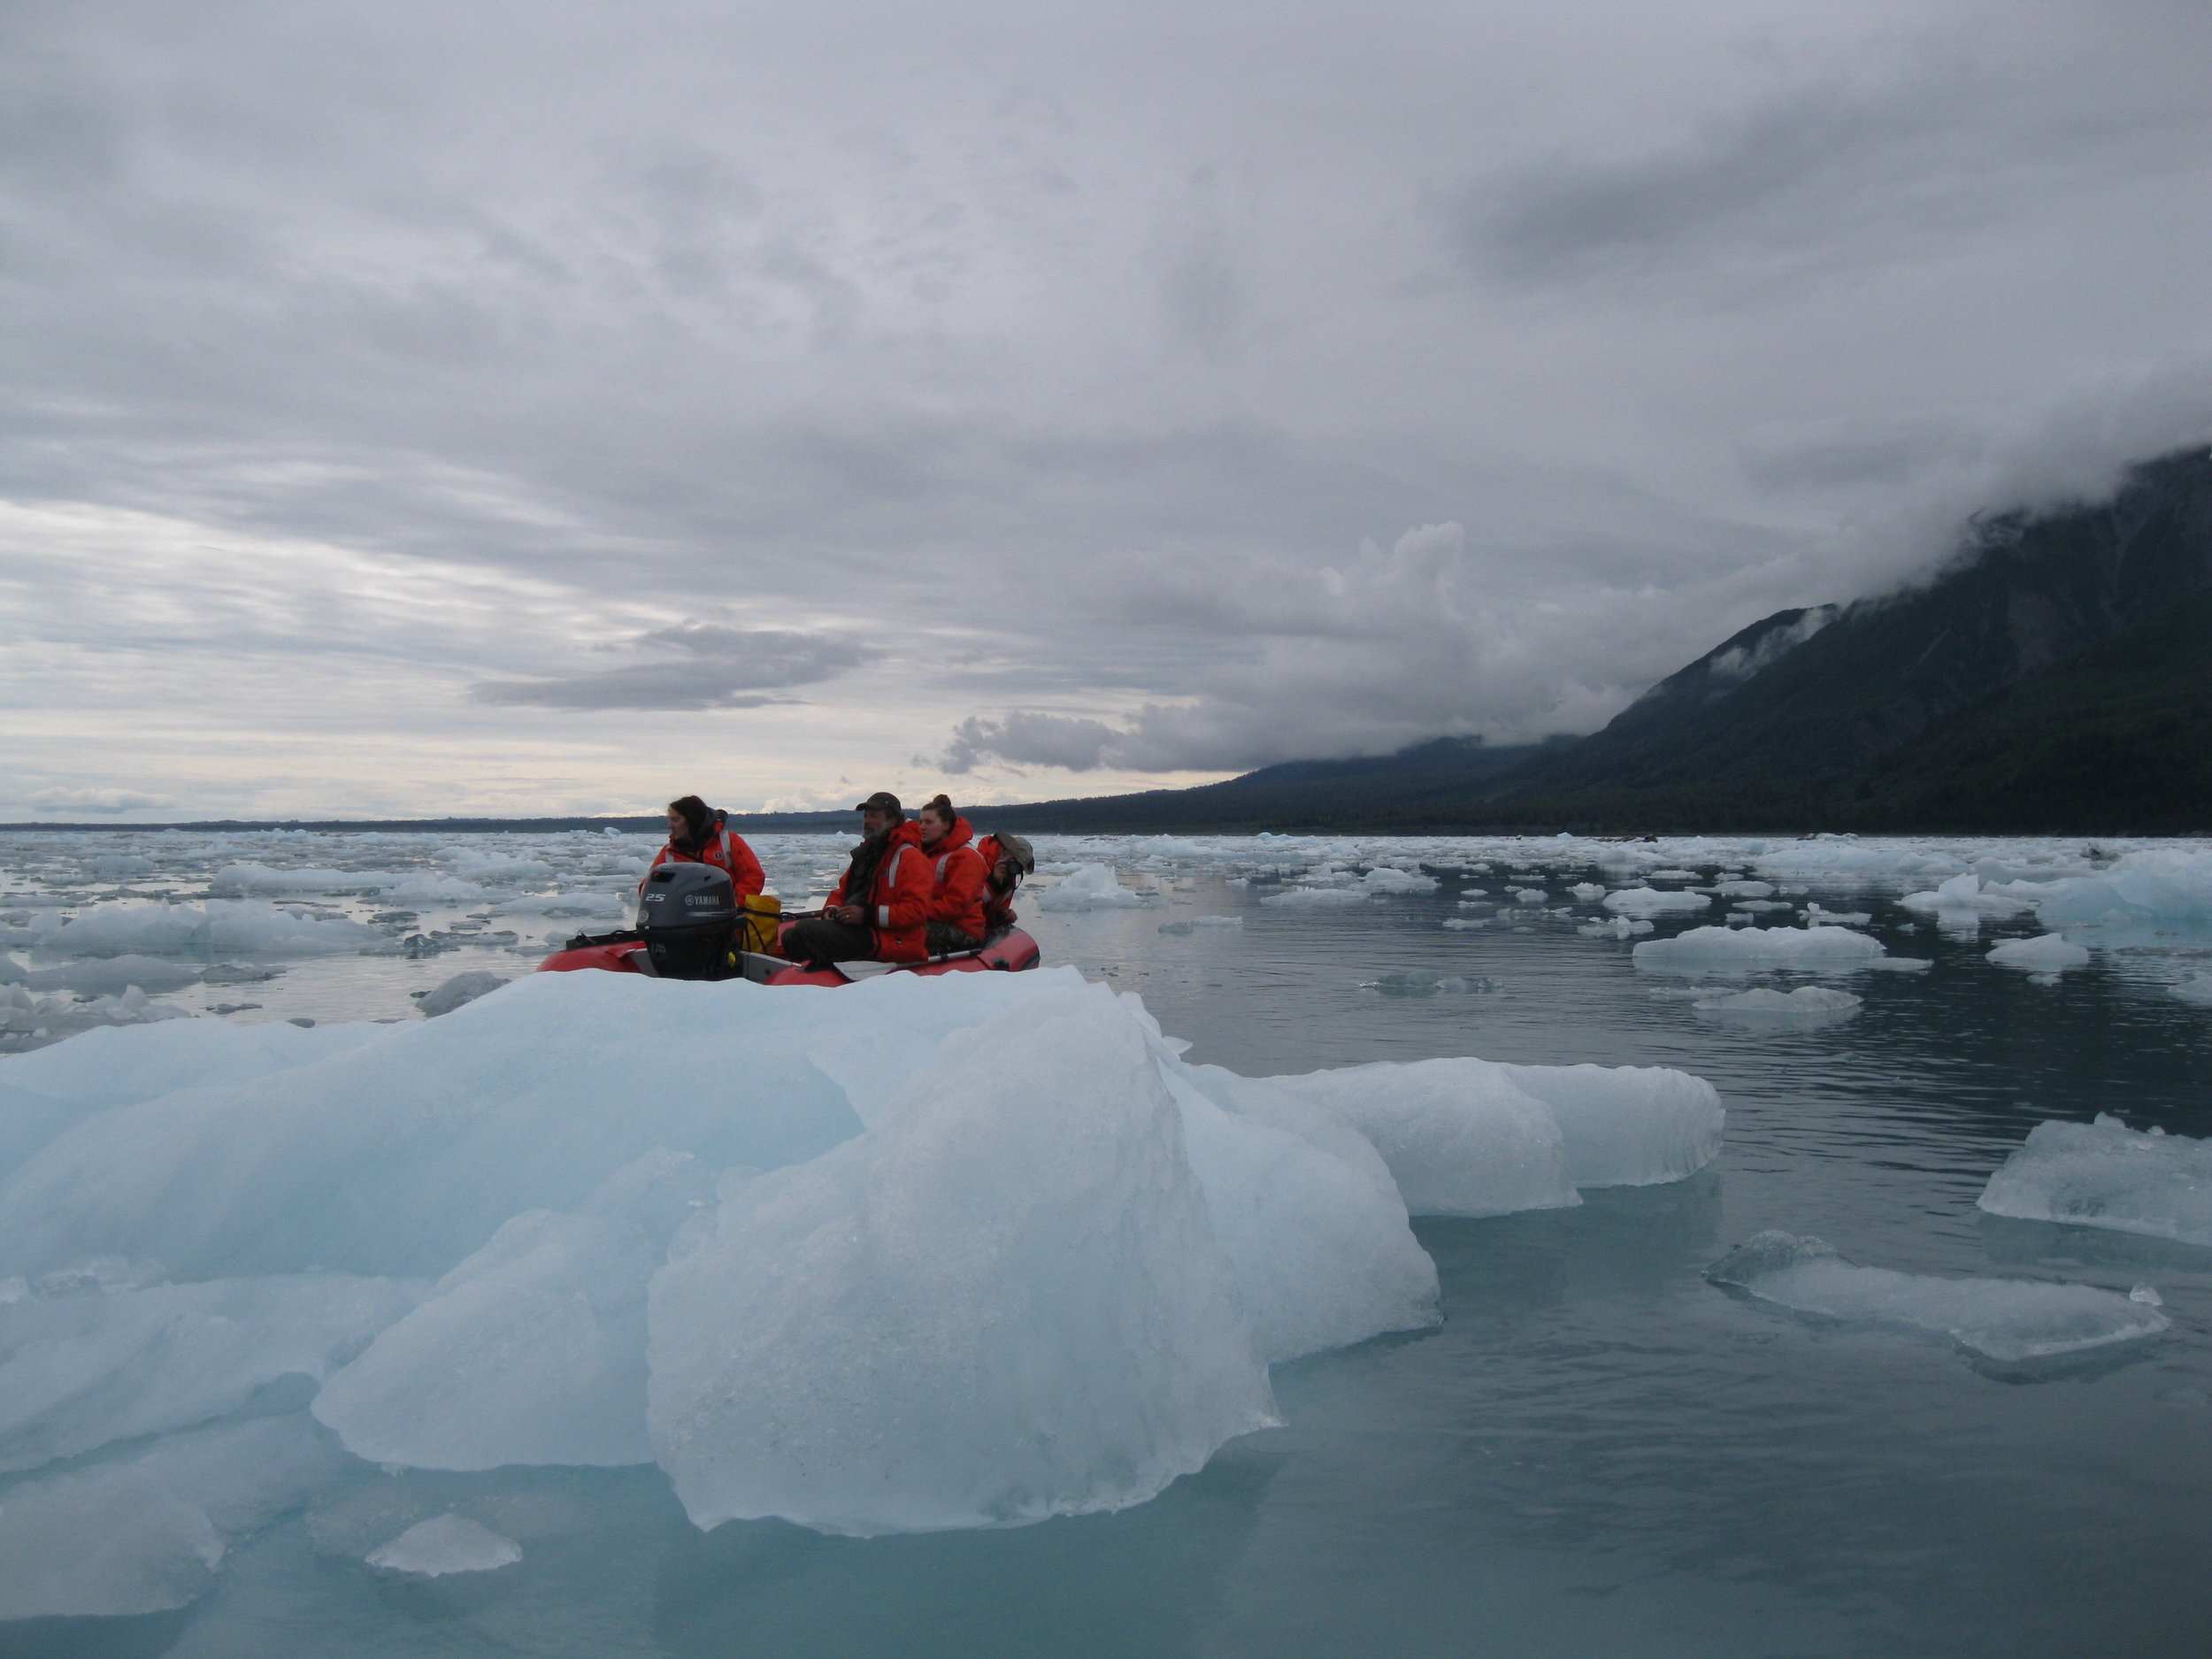 r. Aron Crowell and students watch for harbor seals on a visit to the ice floe rookery near Hubbard Glacier. Photo: Darian LaTocha